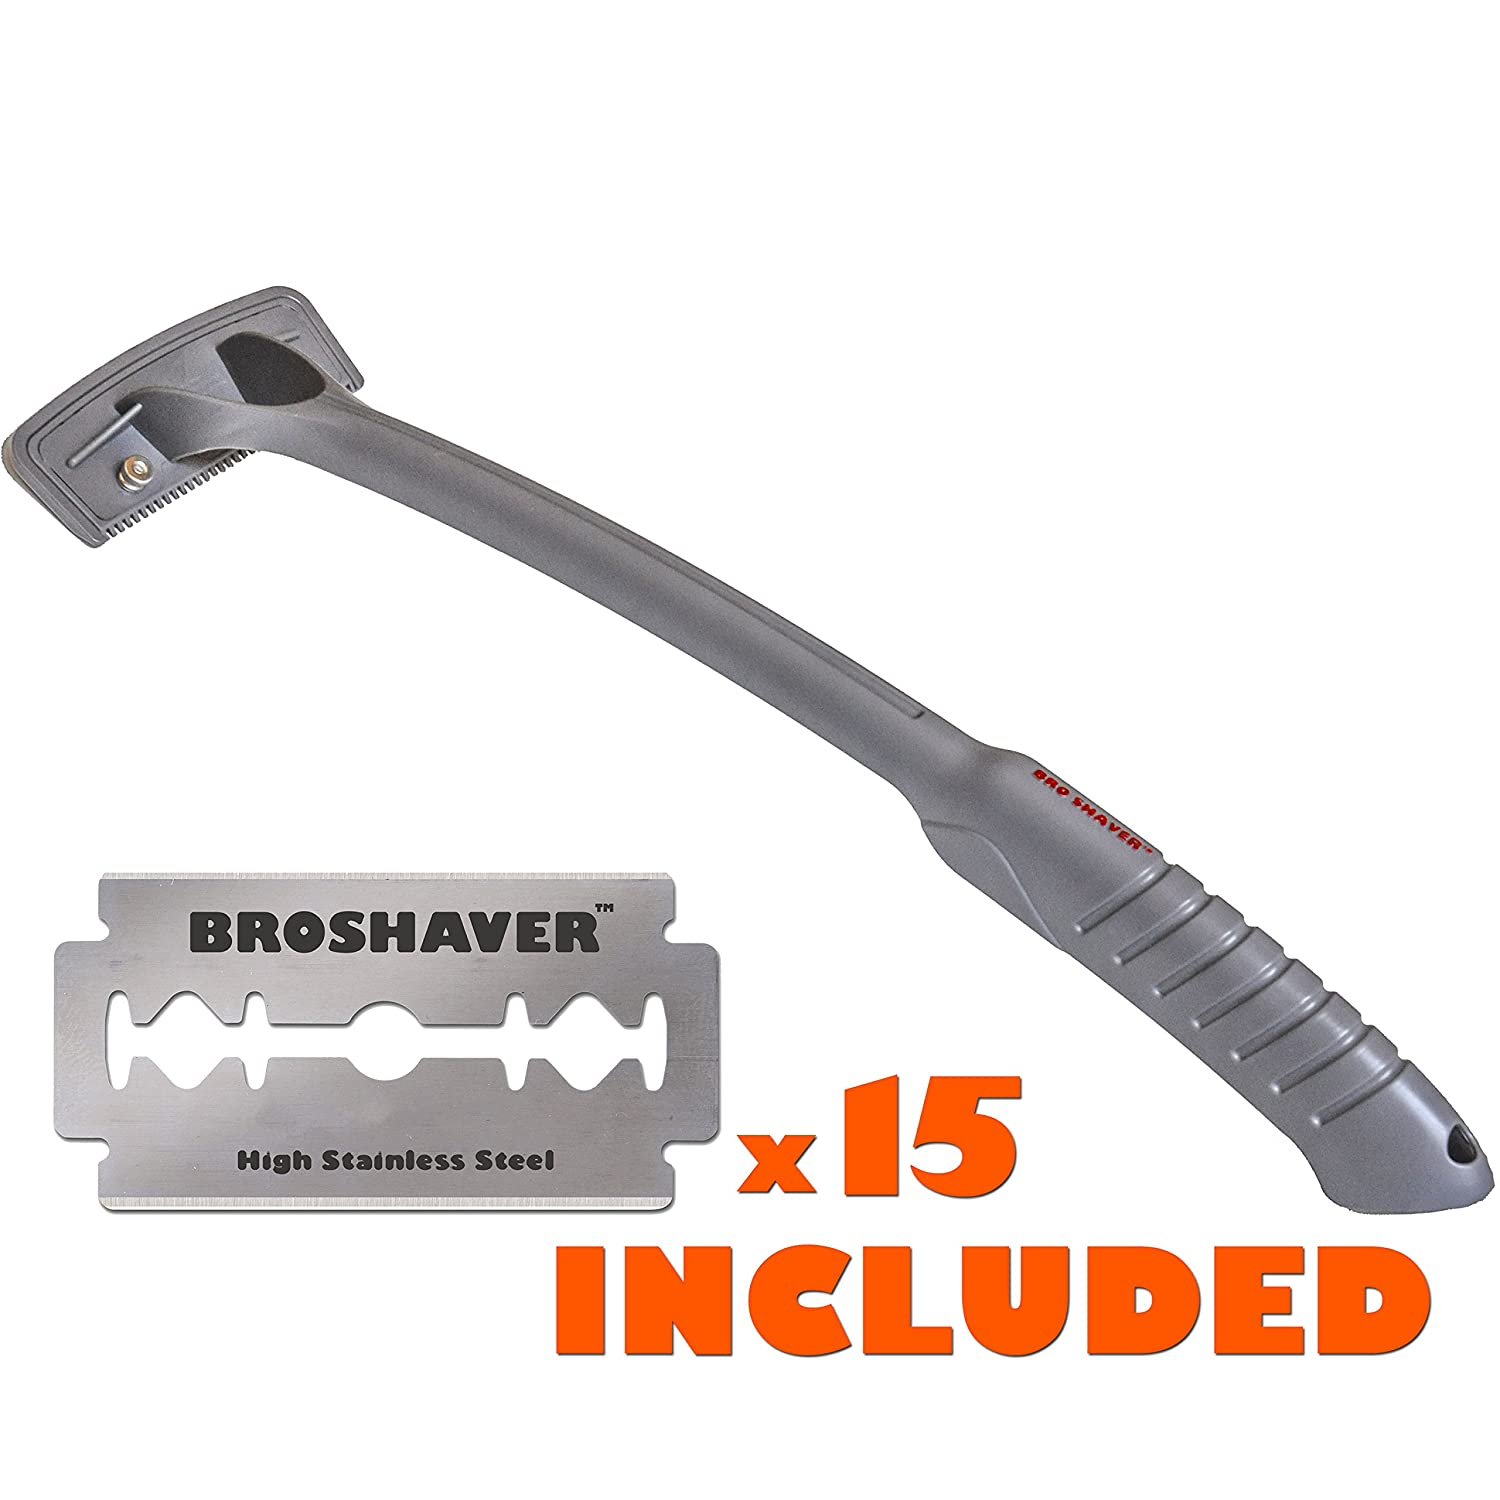 NEW! BRO SHAVER BACK HAIR SHAVER uses Refillable Standard Double Edge Safety Razor Blades Replaceable for Pennies, DIY, Stainless Steel Bolts A32